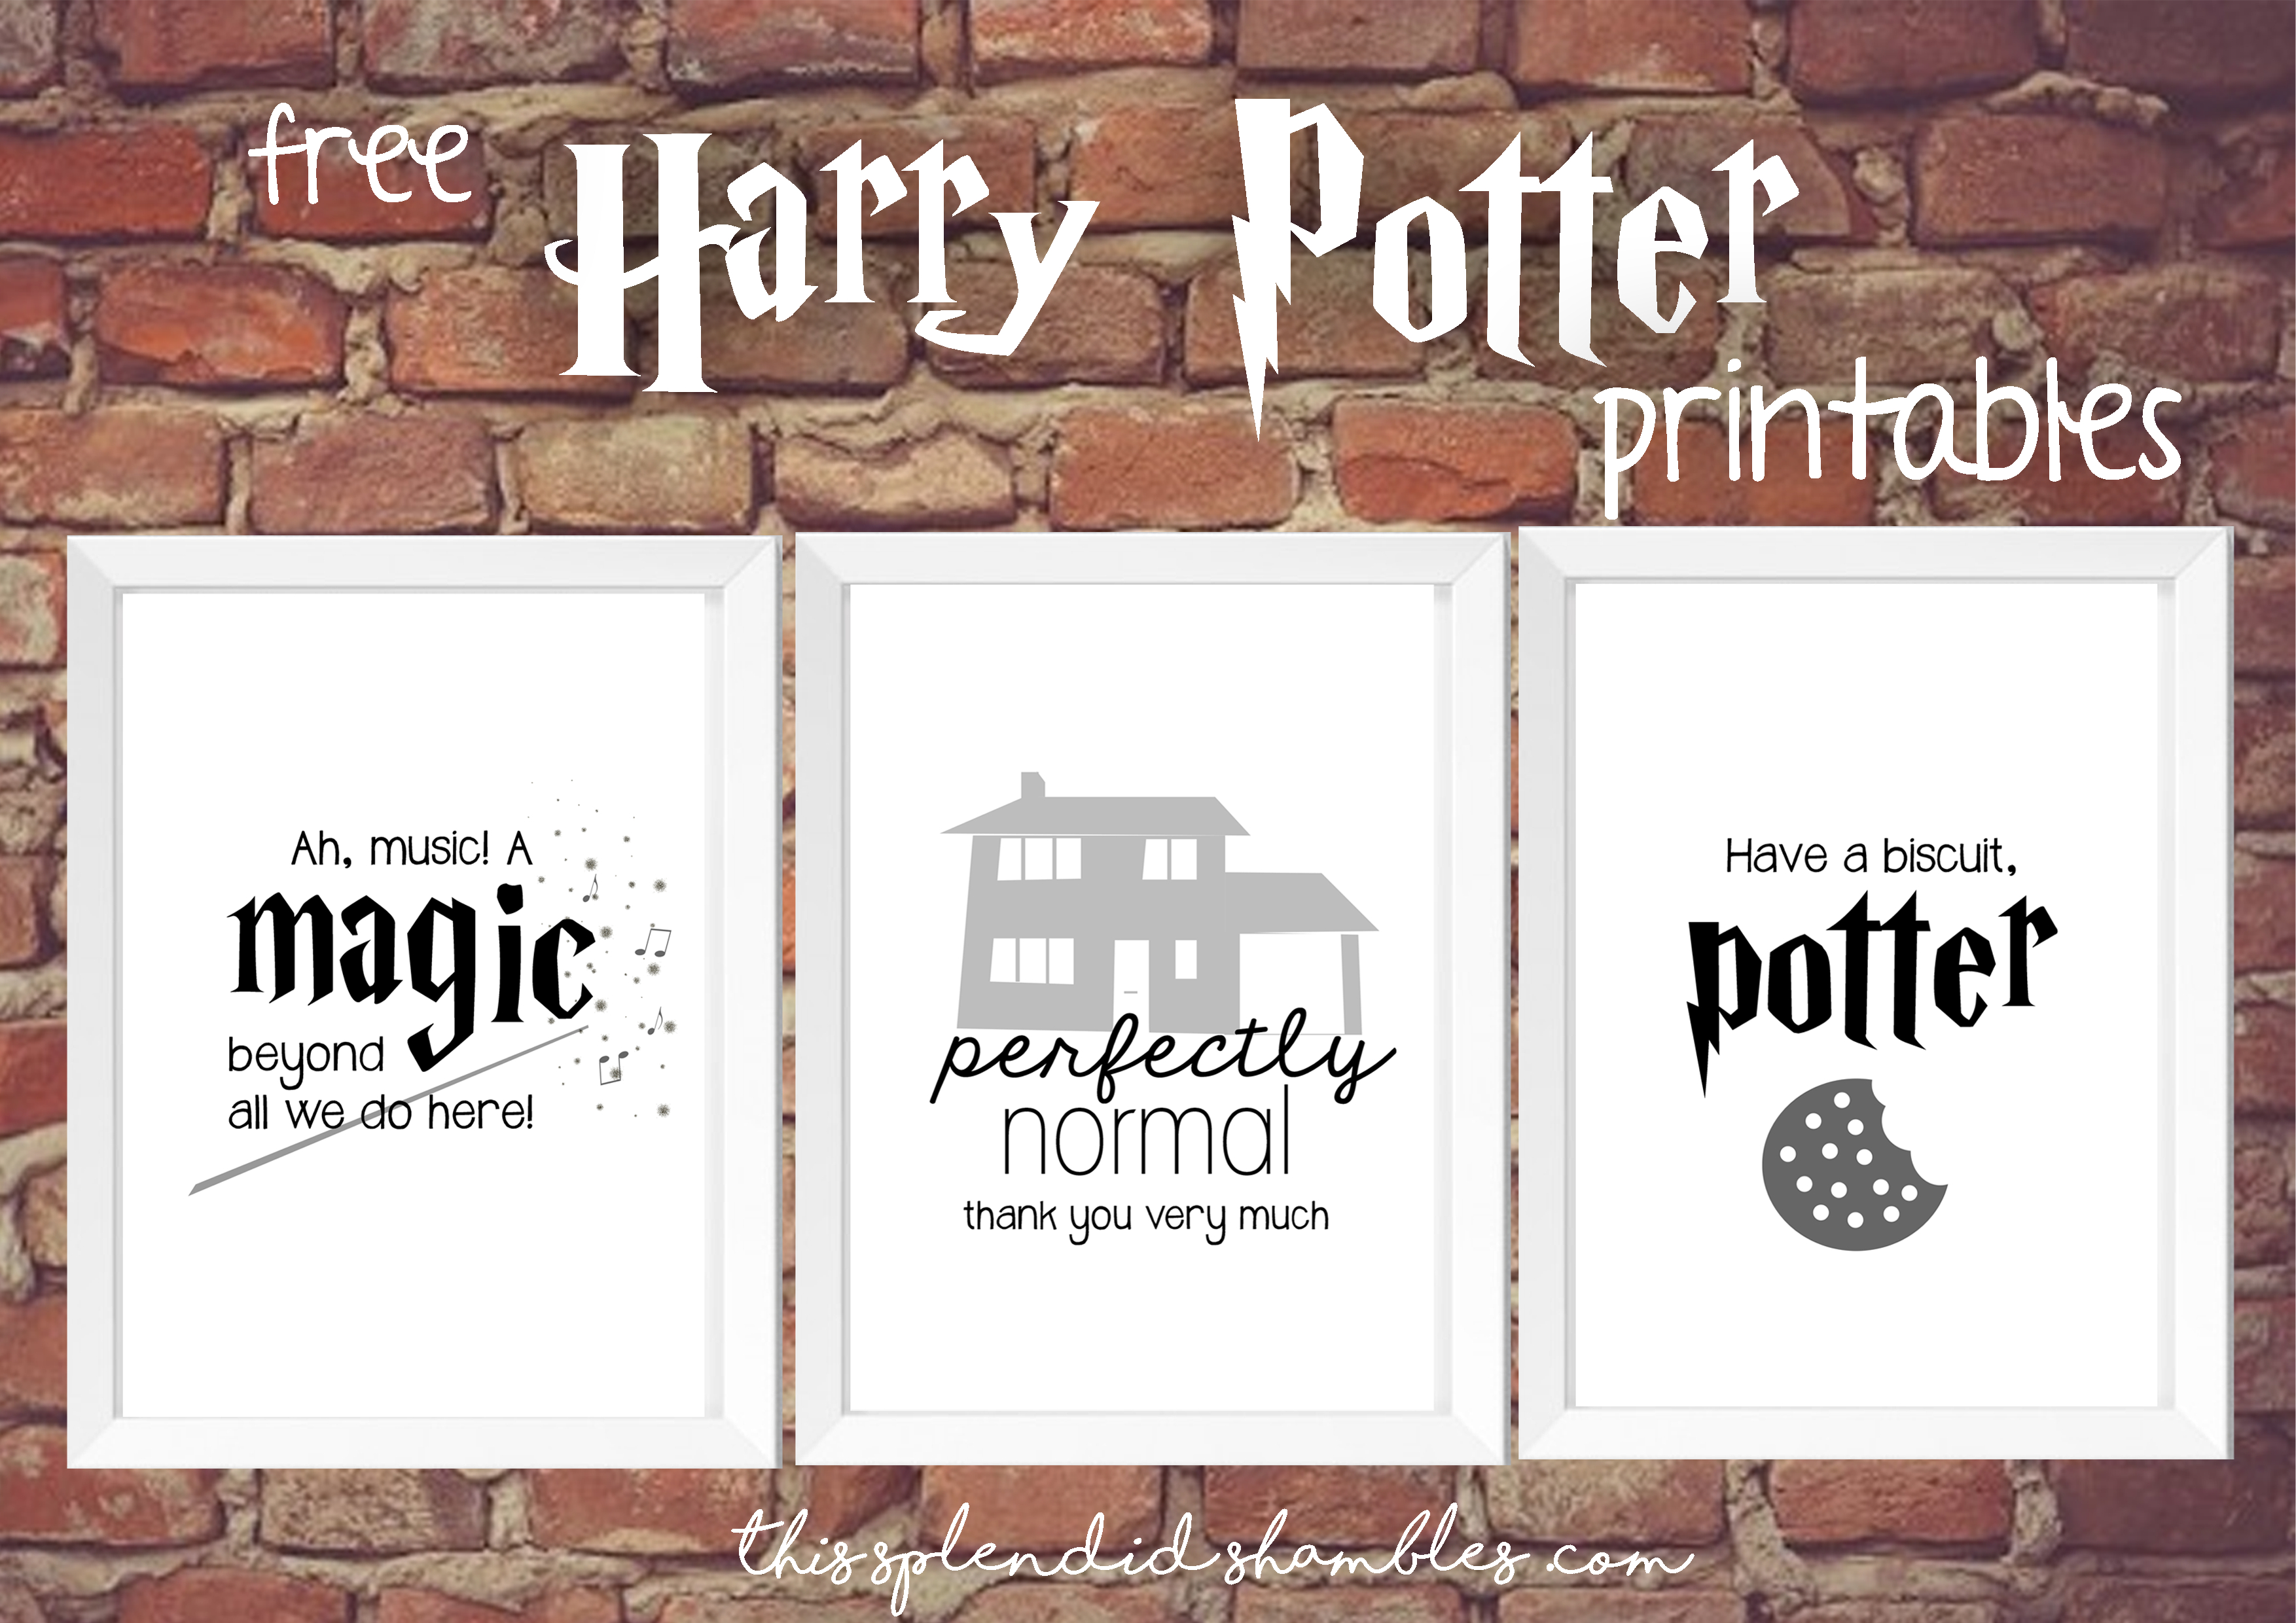 Harry Potter Week - 3 Free Printables - This Splendid Shambles - Free Printable Harry Potter Pictures